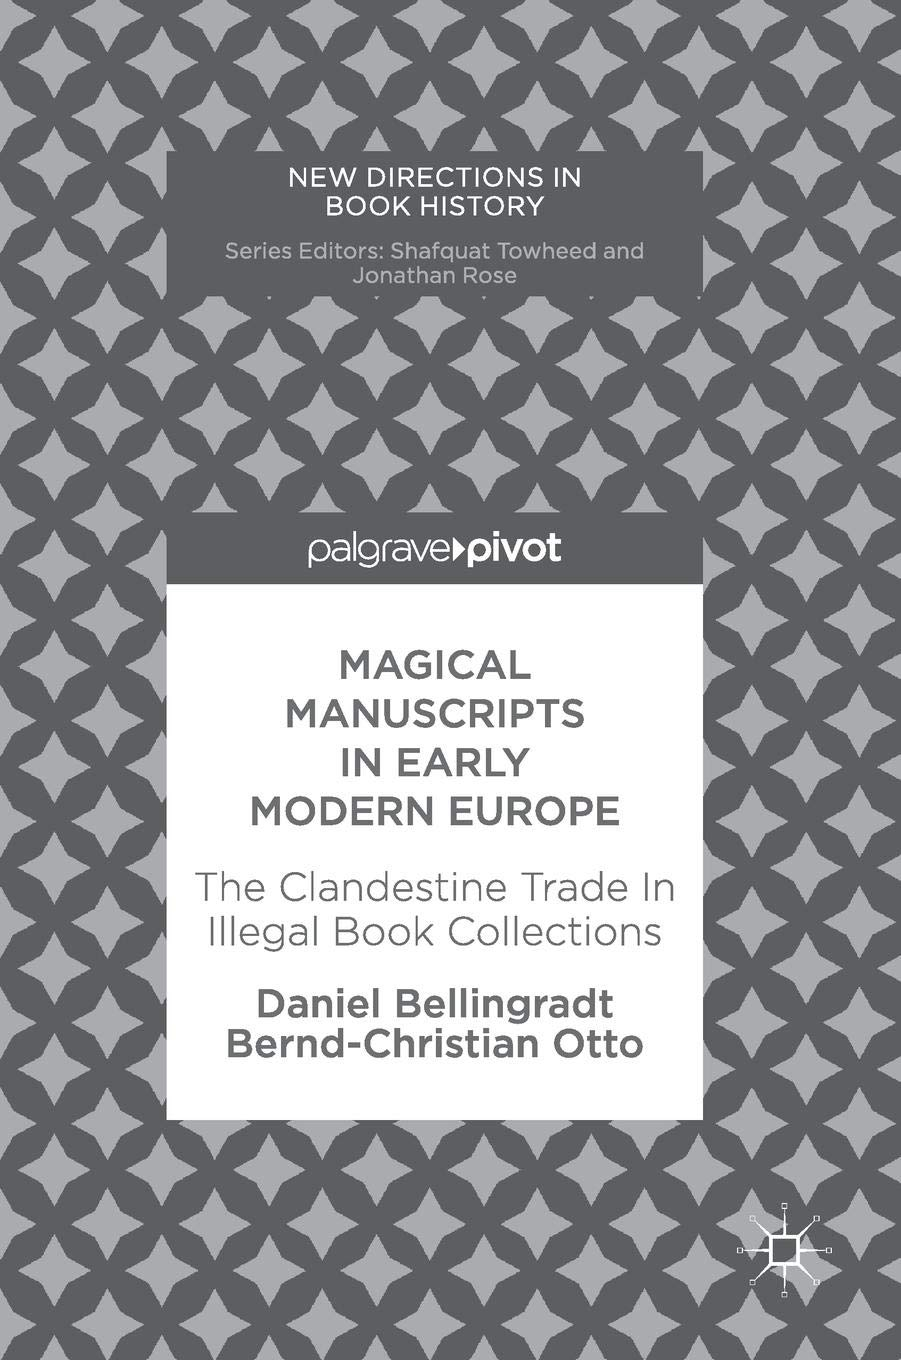 Magical Manuscripts In Early Modern Europe  The Clandestine Trade In Illegal Book Collections  New Directions In Book History